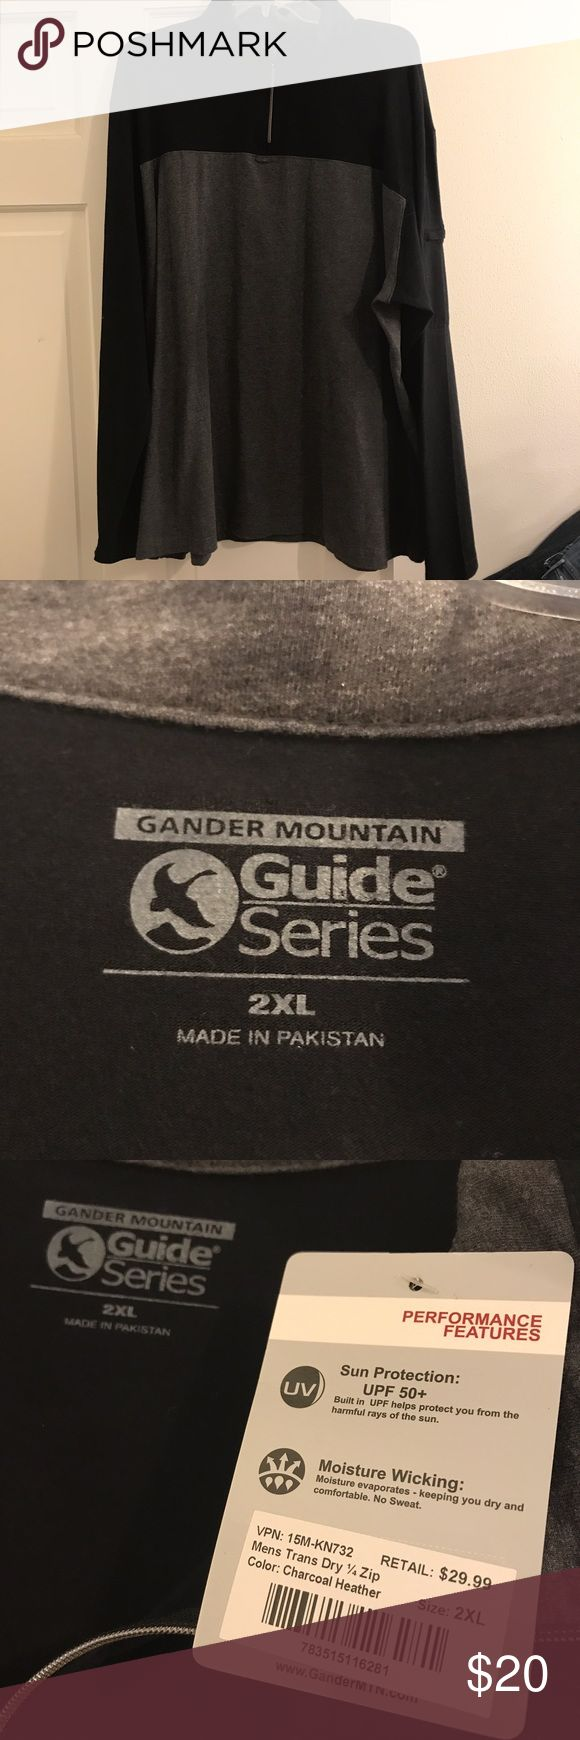 🆕NWT Gander Mountain Guide Series 1/4 zip New with tags Gander Mountain Guide Series 2XL long sleeve 1/4 zip men's shirt in charcoal heather. Also has a zipper on arm, see photo! Husband never wore, so selling on here! Please let me know what questions you have! gander mountain Shirts Tees - Long Sleeve